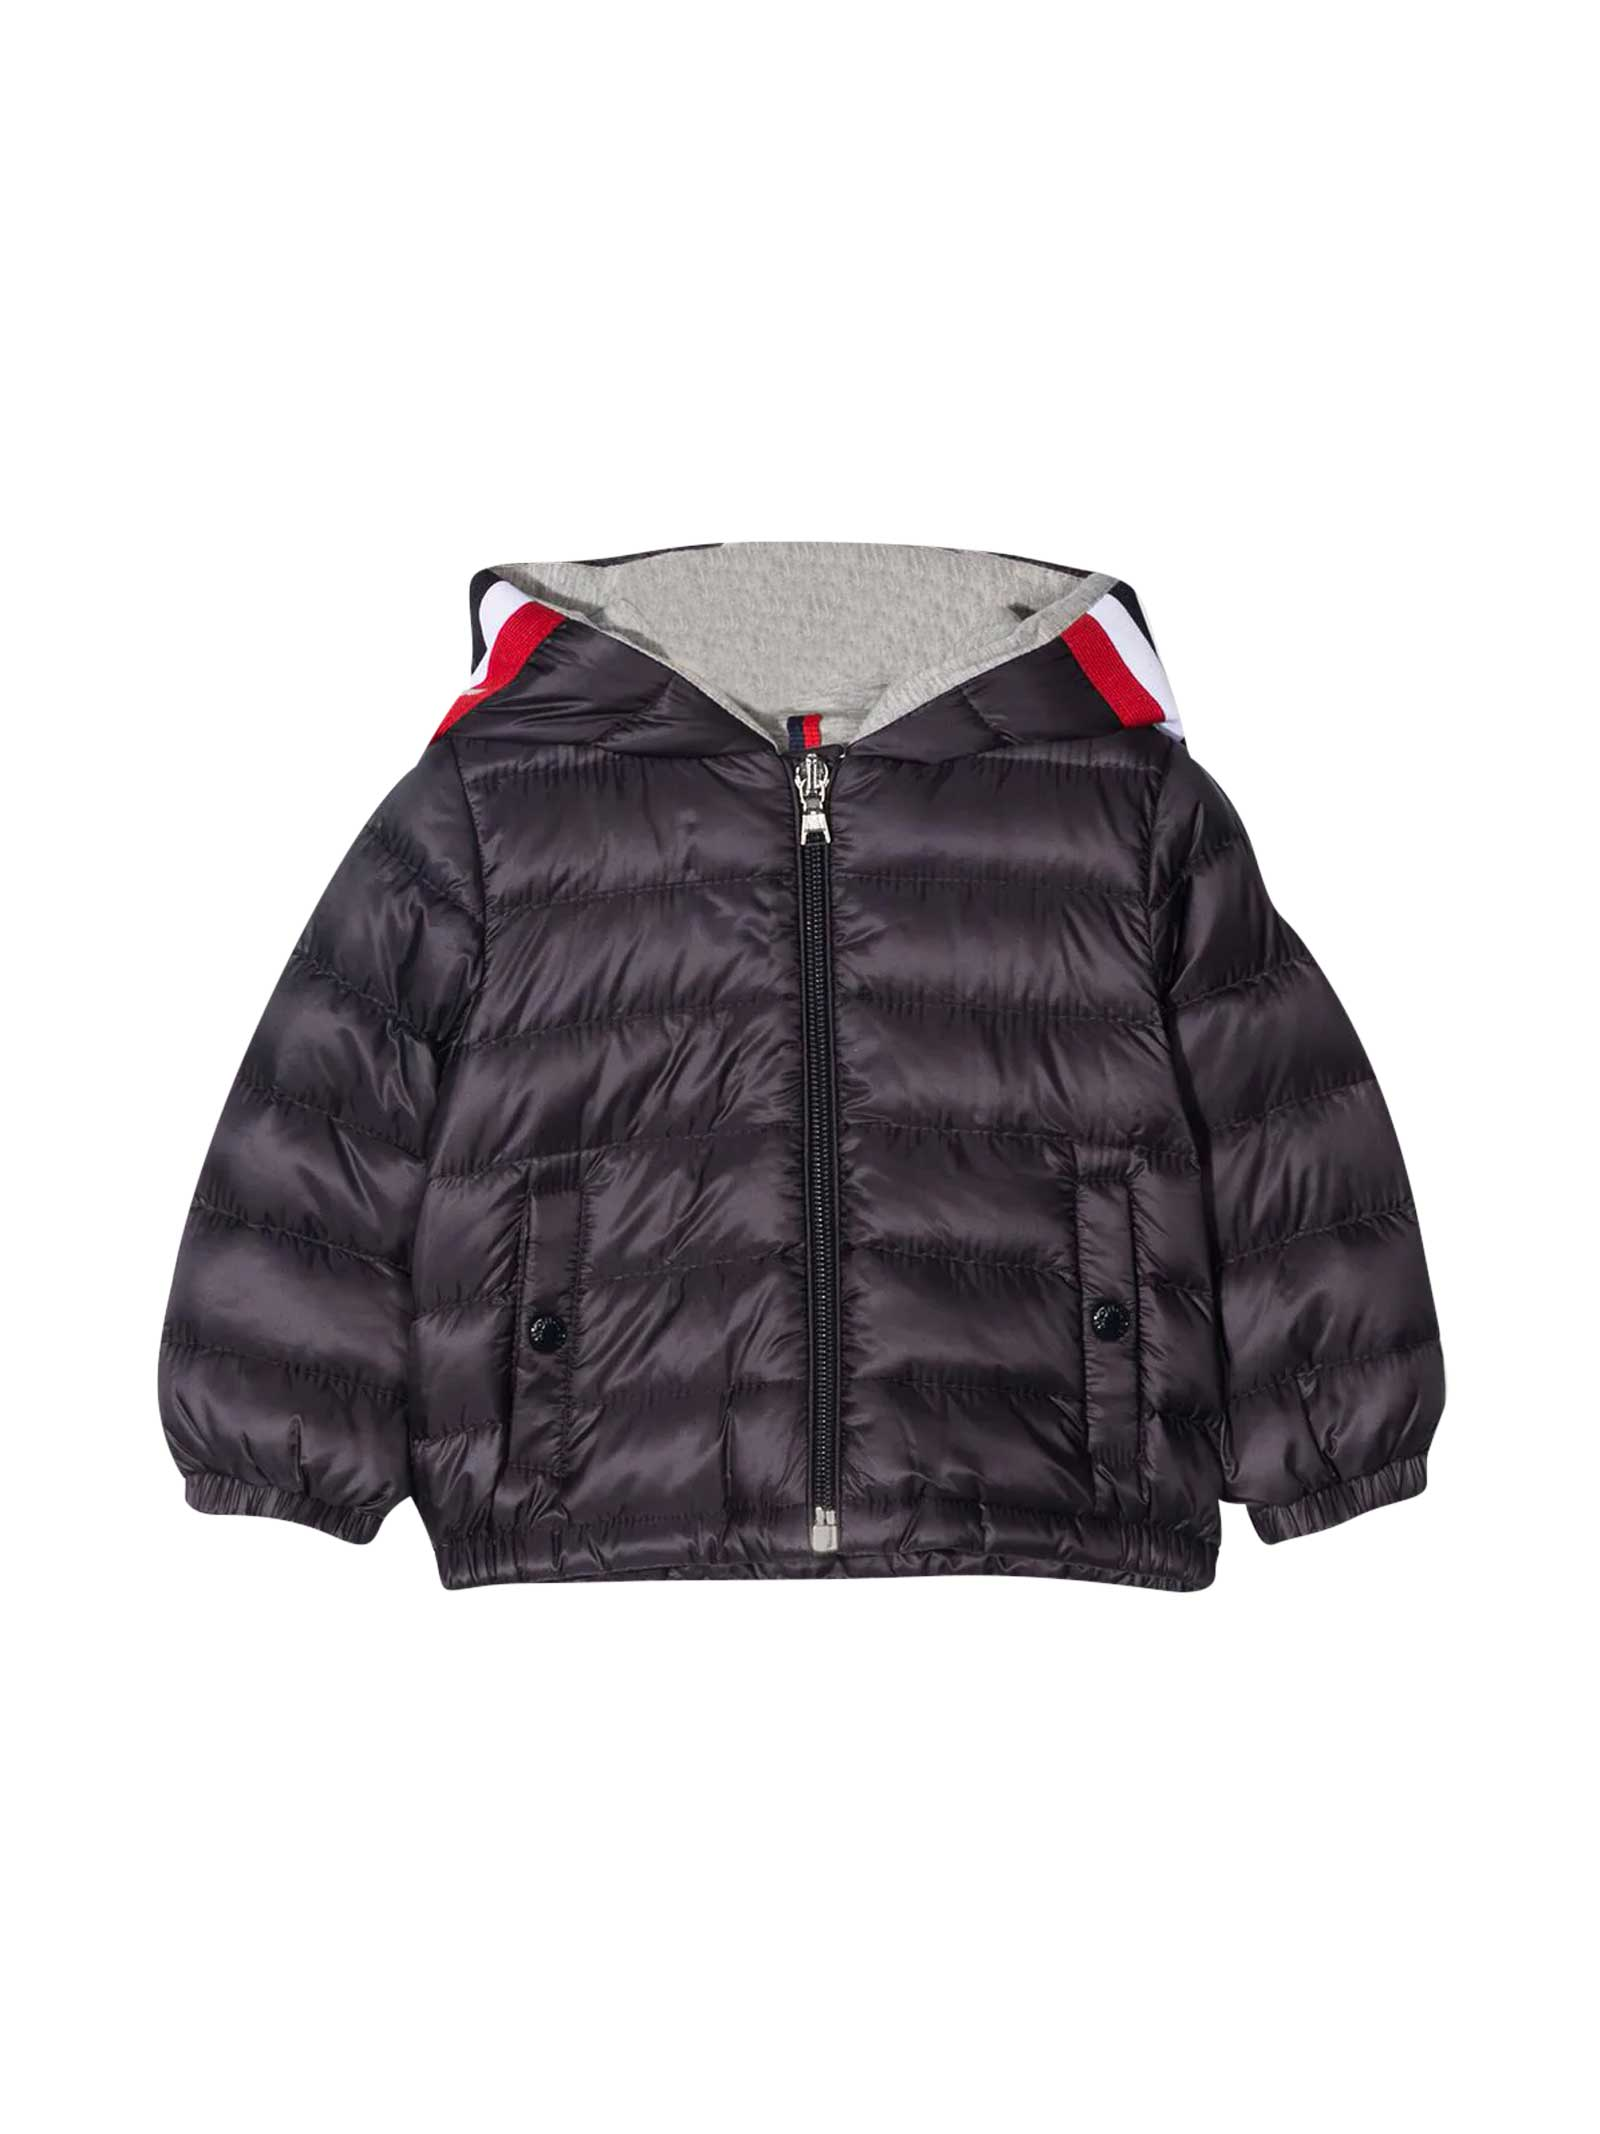 Moncler Padded Jacket With Hood